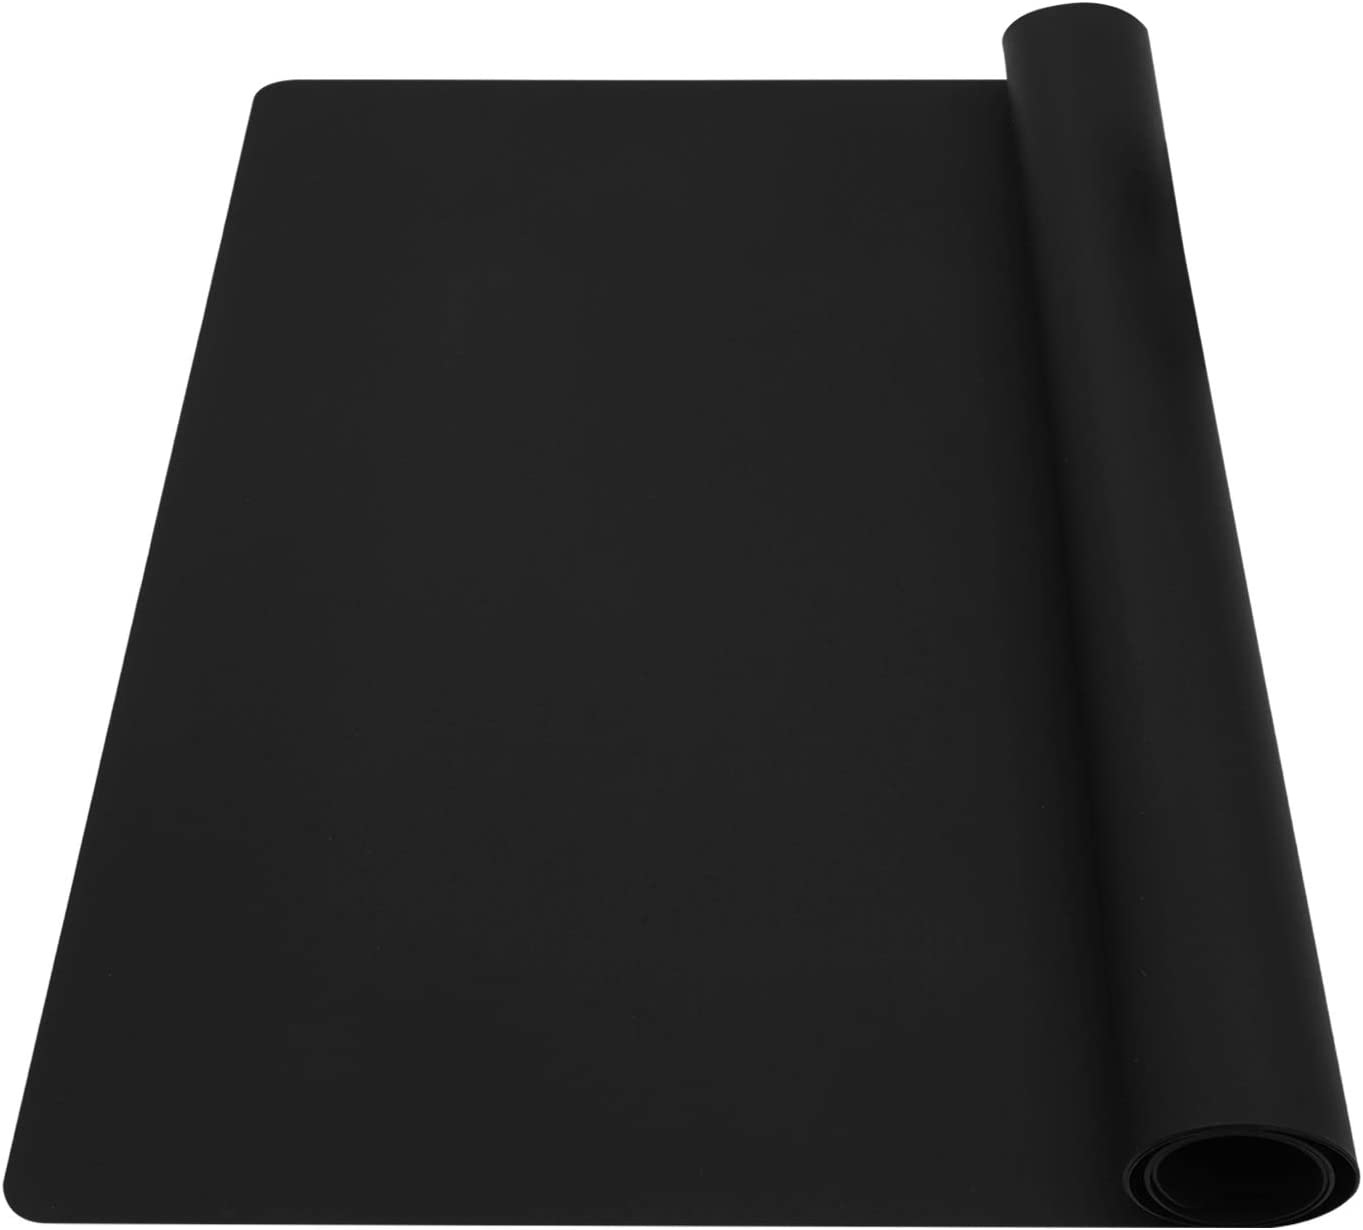 wellhouse Extra Large Silicone Baking Mat Pastry Mat Countertop Protector Clay Mat No-slip Non Stick Waterproof Heat Resistant Silicone Placemats Table Mat 23.6 by 15.7 inch(Black)